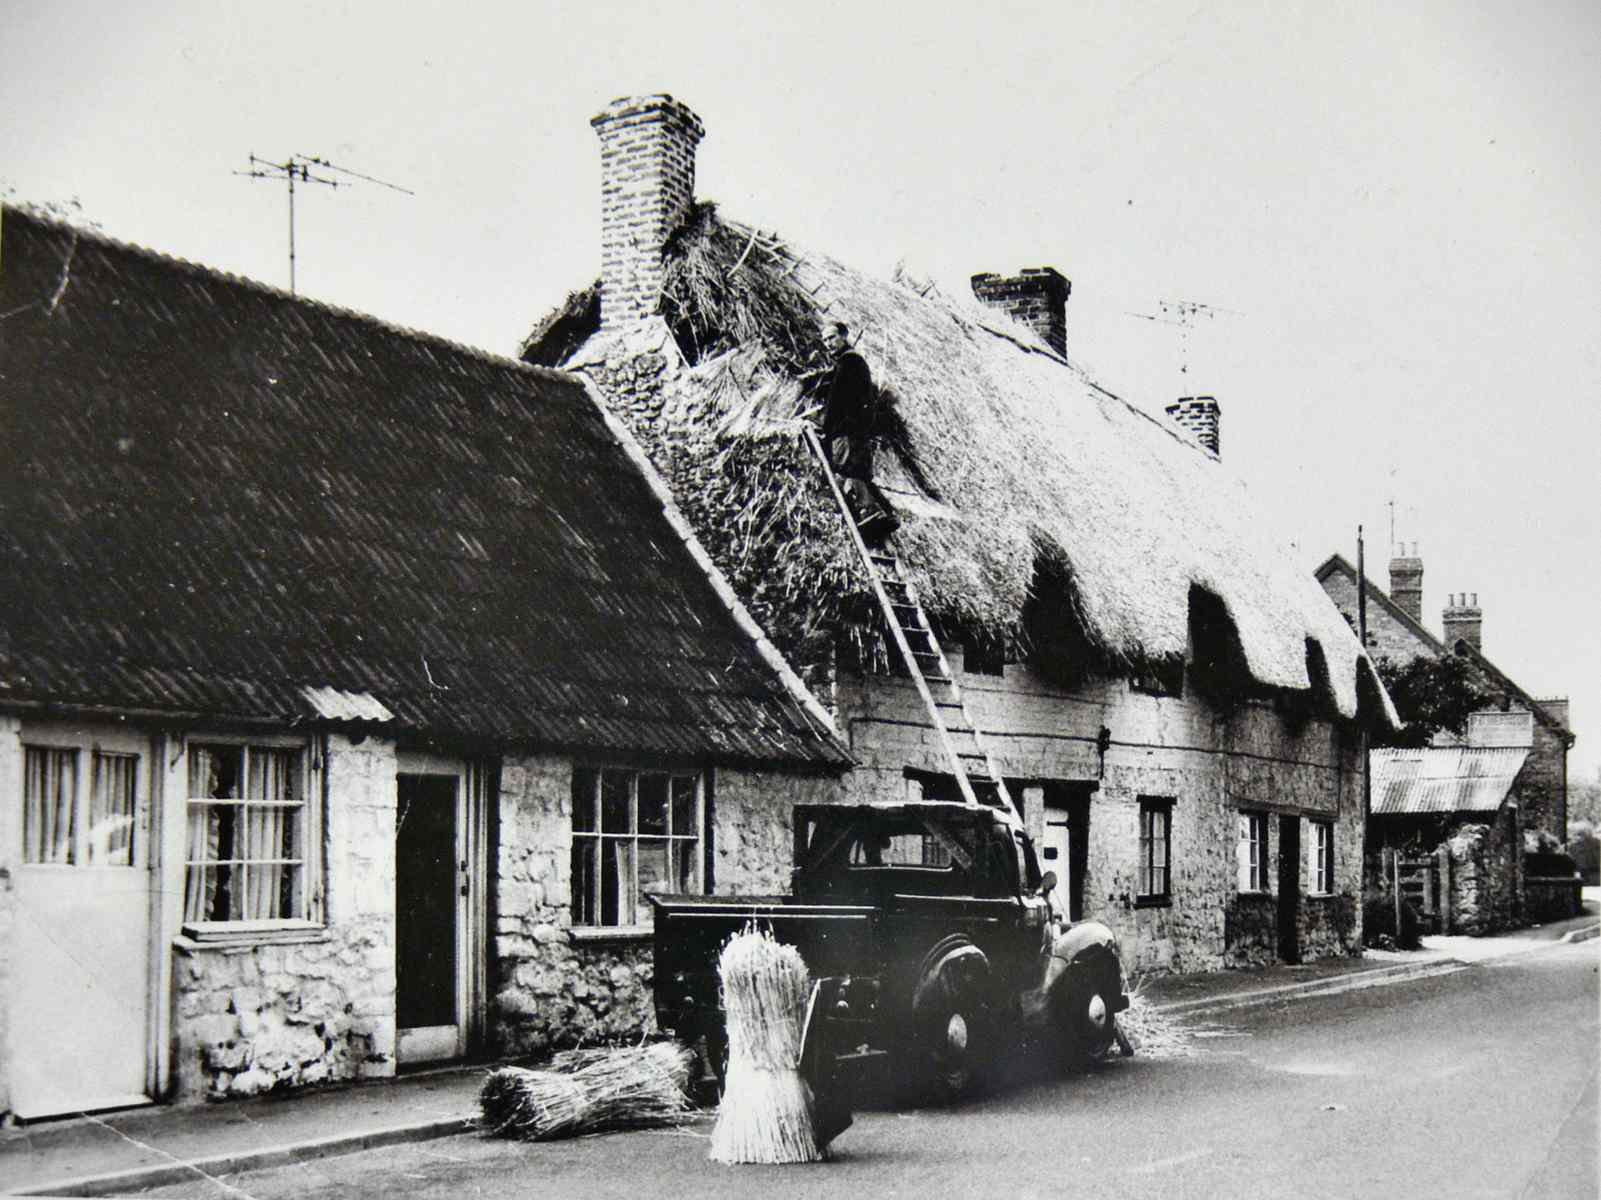 Peter Anger Thatching in 1961